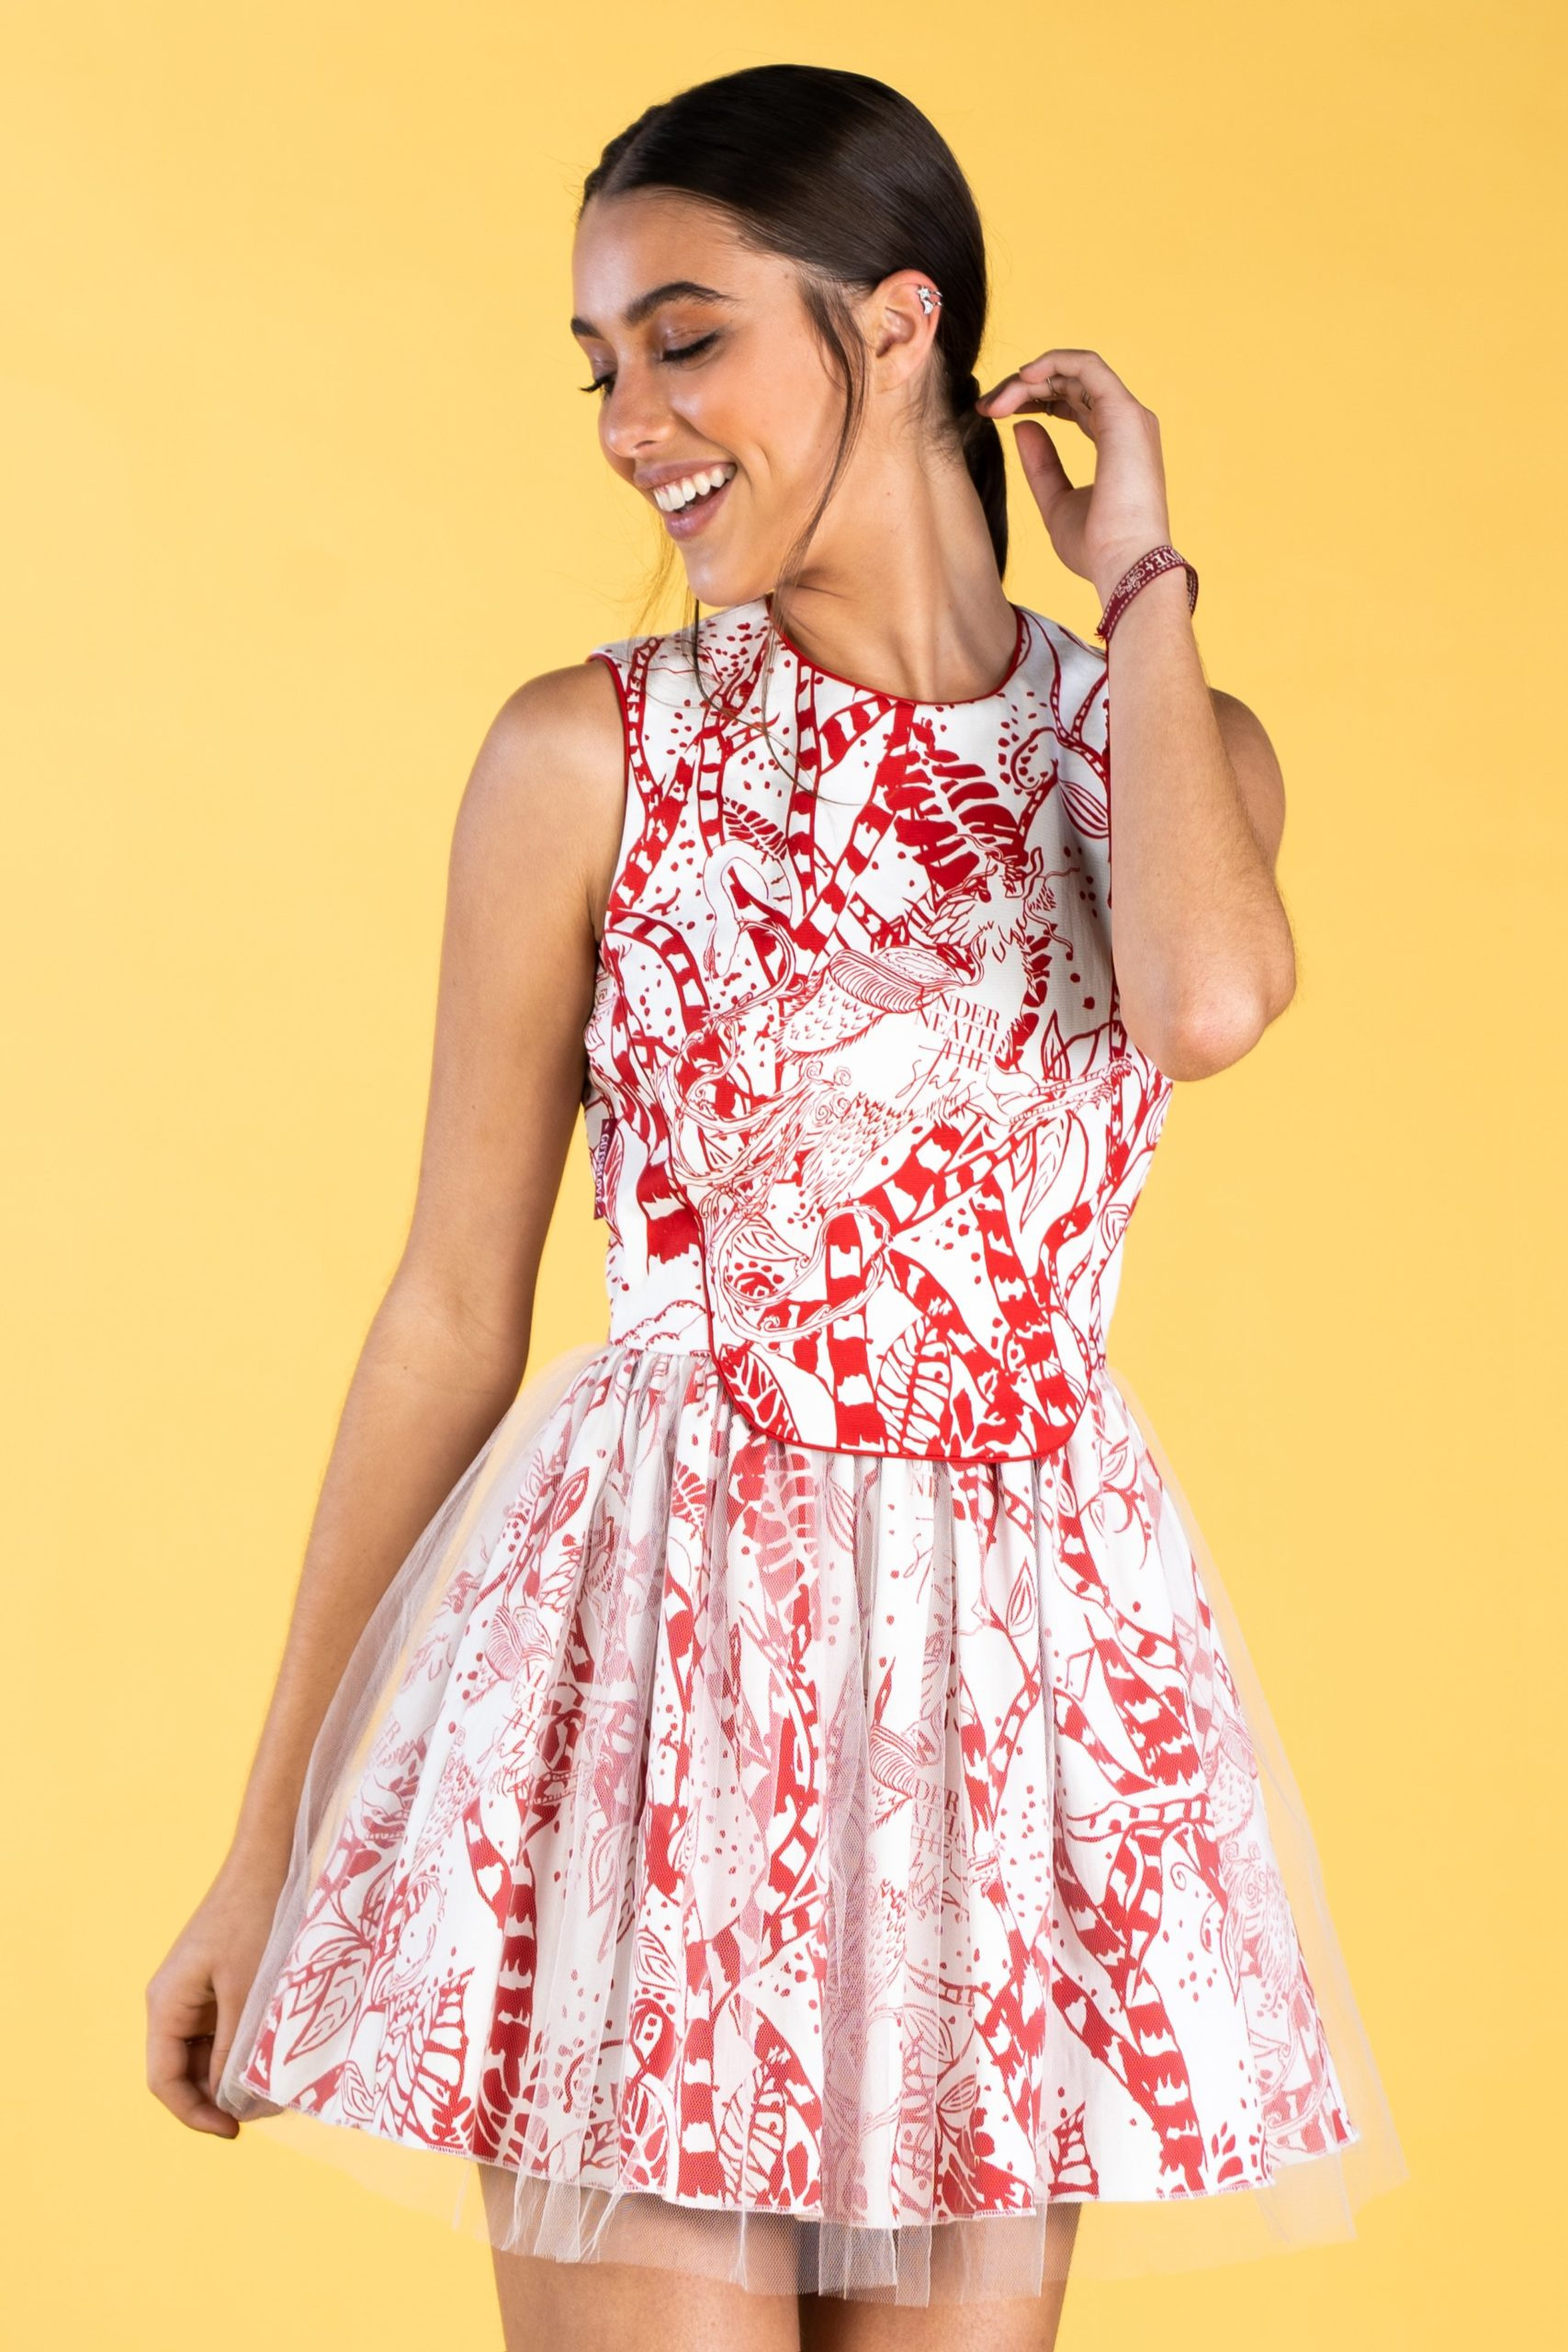 Guts and love. Vestido corto Summer stories in red de la colección primavera verano 2020 Underneath the star